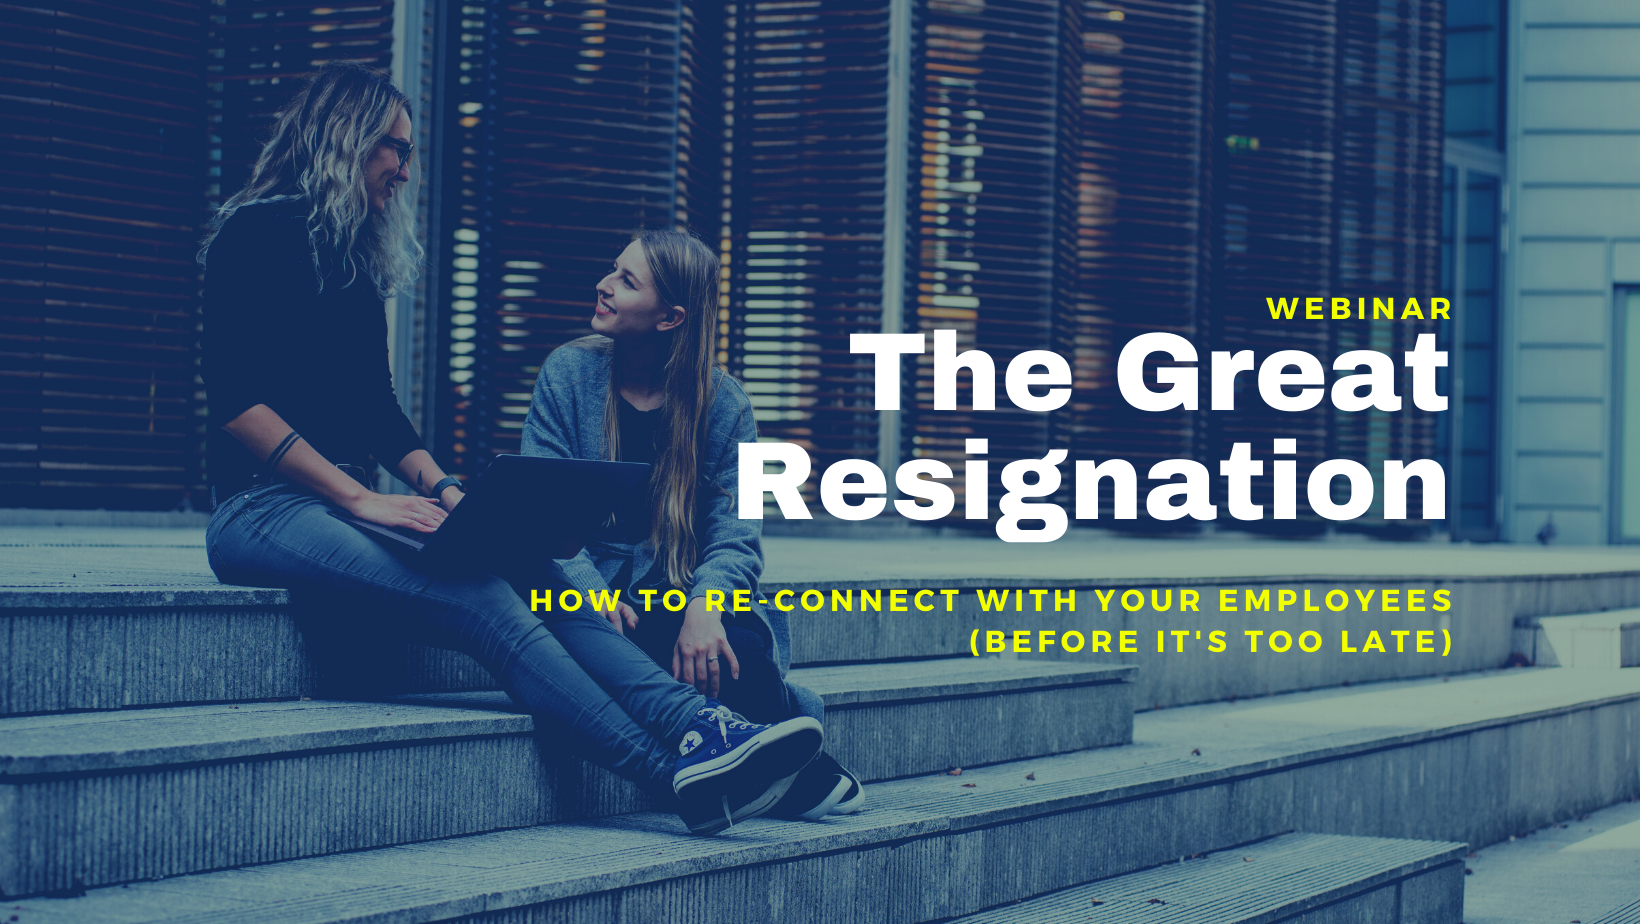 How to Reconnect With Your Employees Before It's Too Late